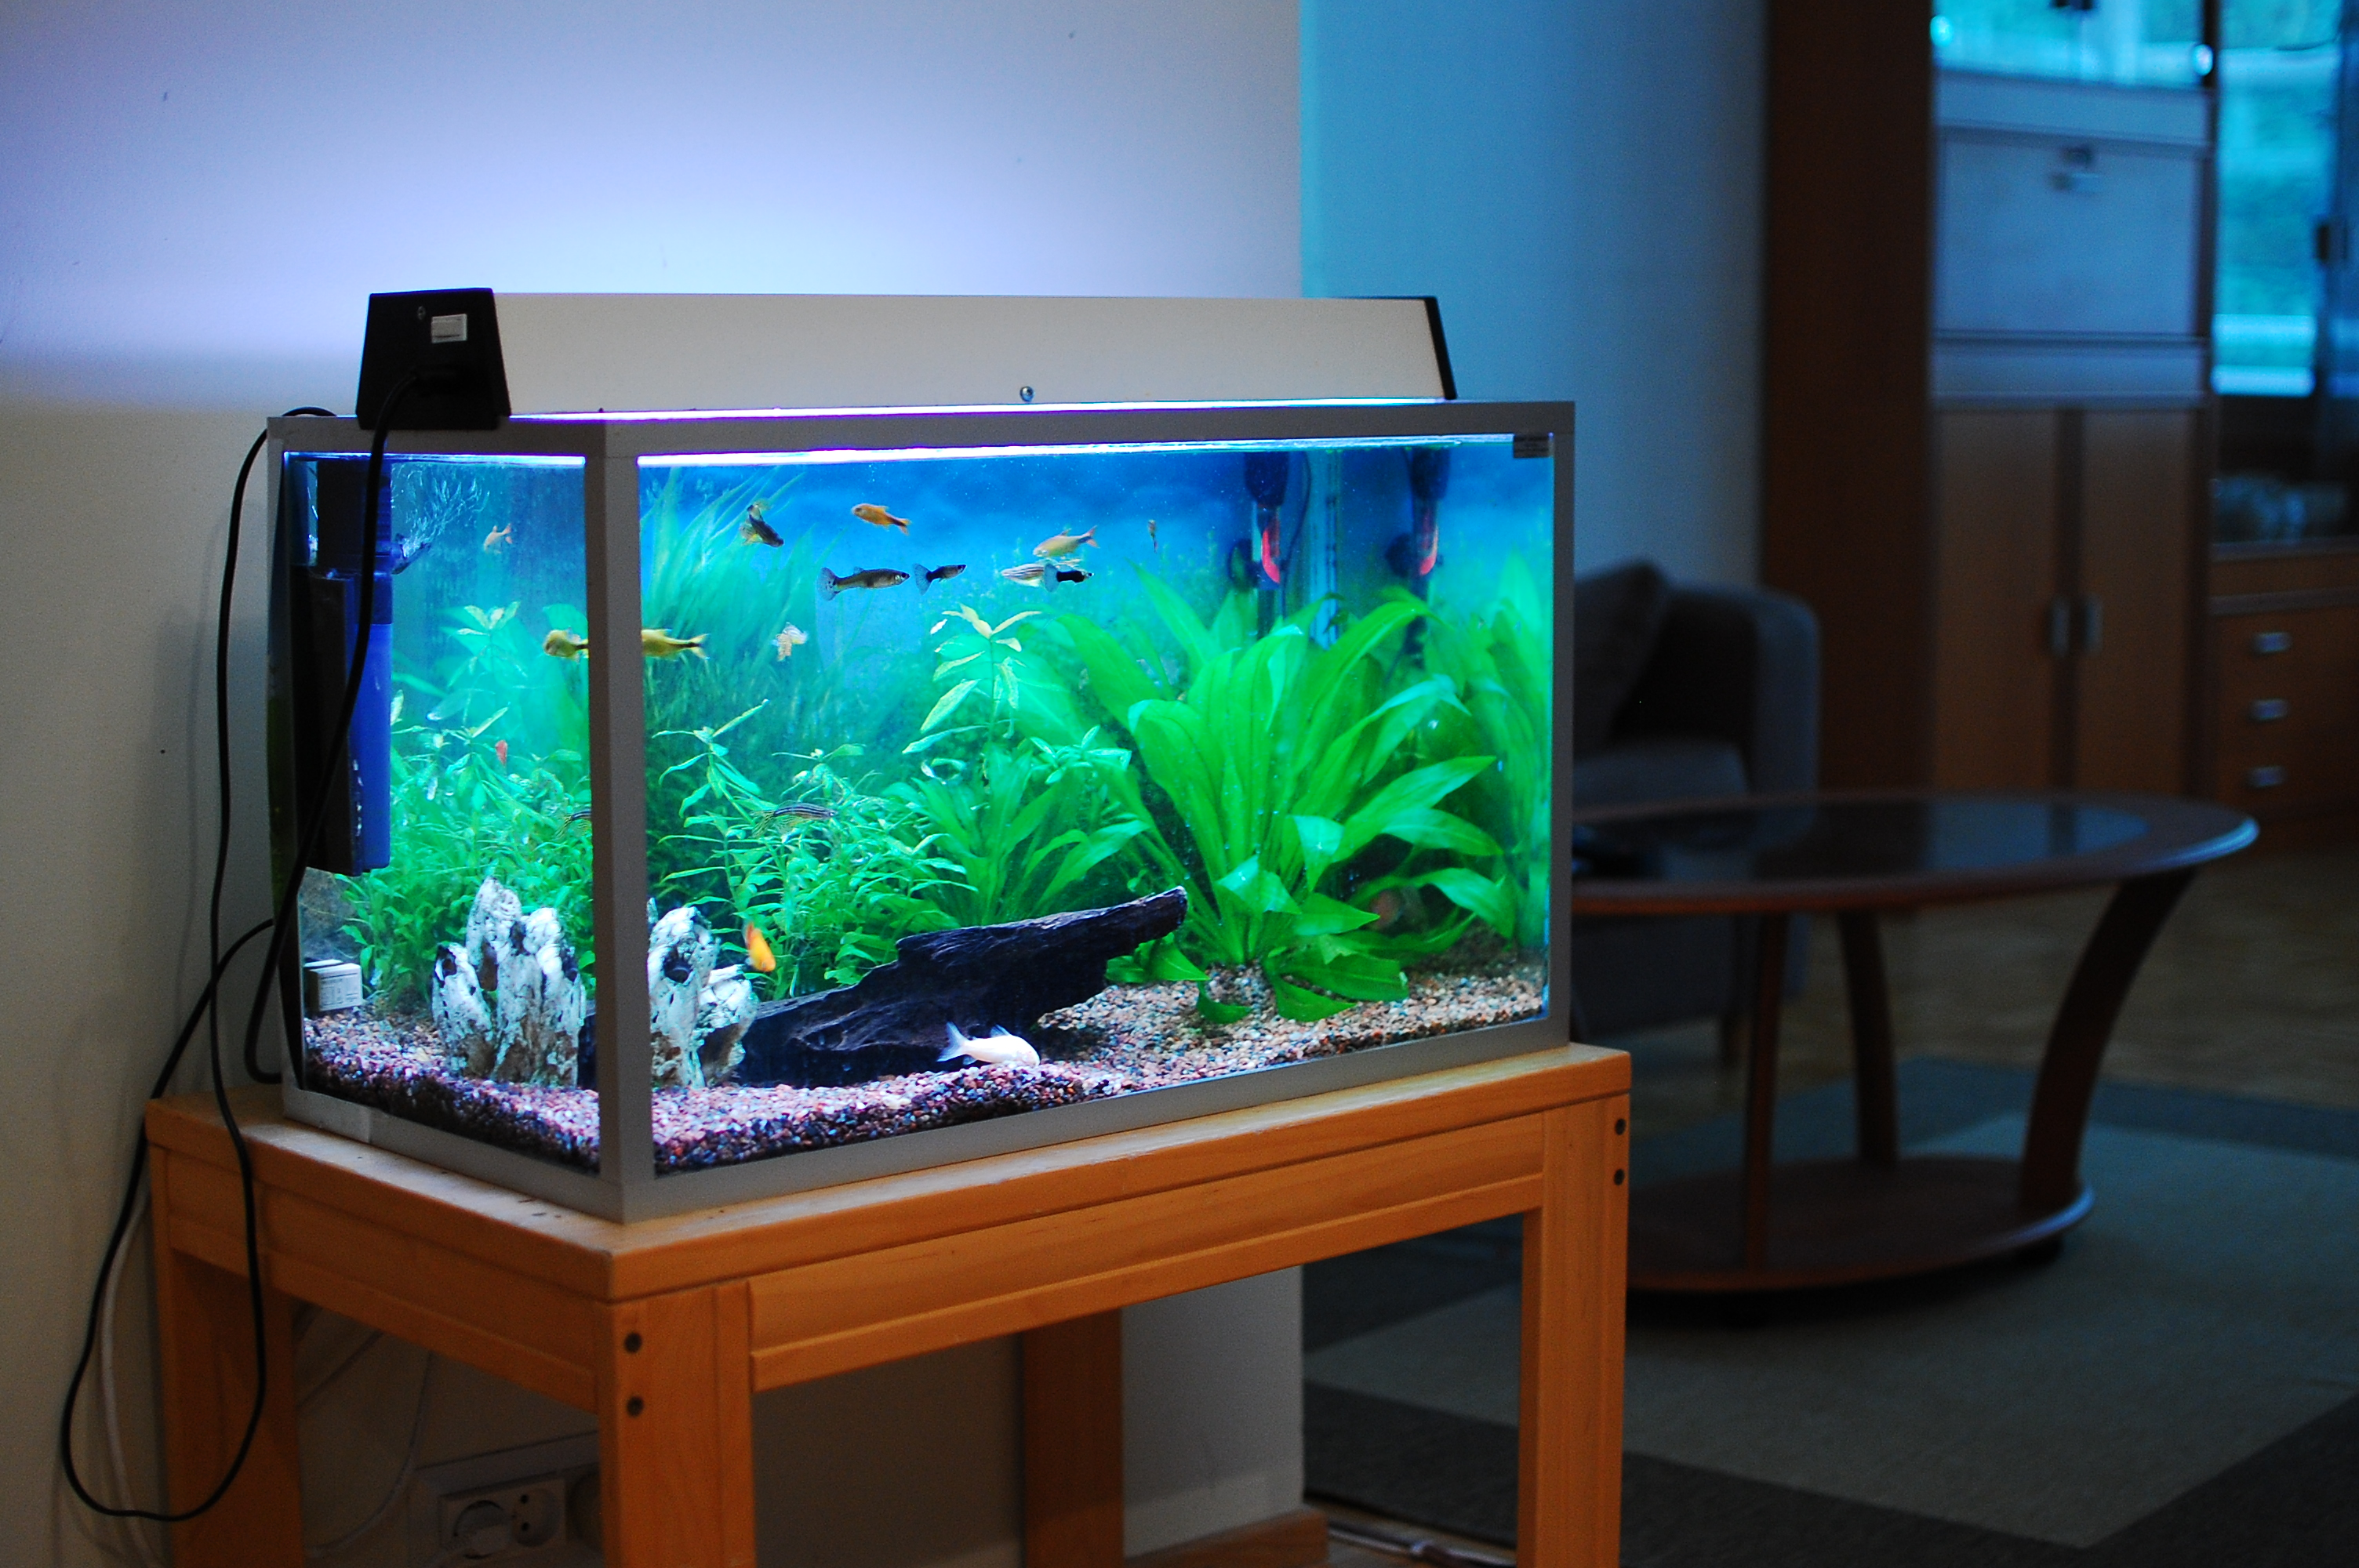 Freshwater aquarium fish tank pictures - As